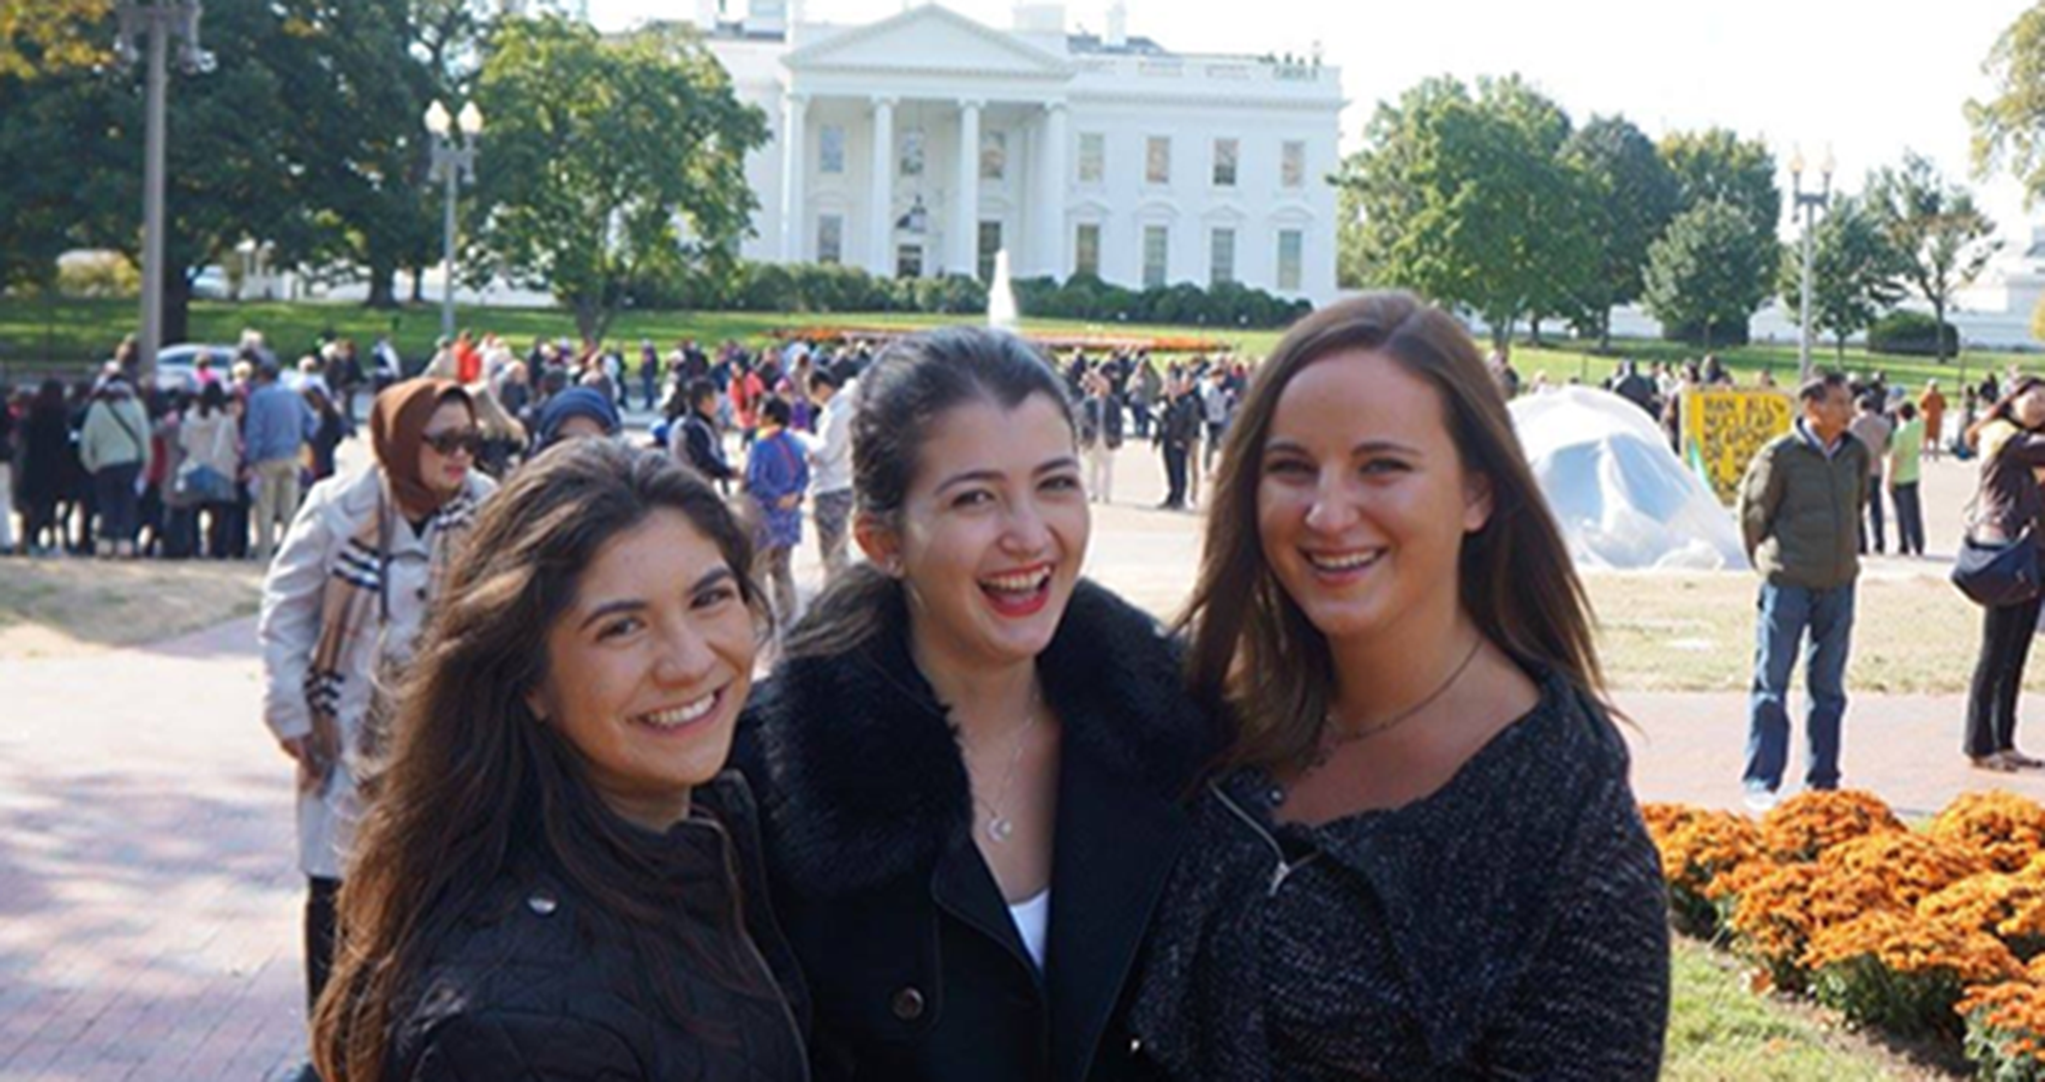 Gap Year Program - American University Online Gap Program  8